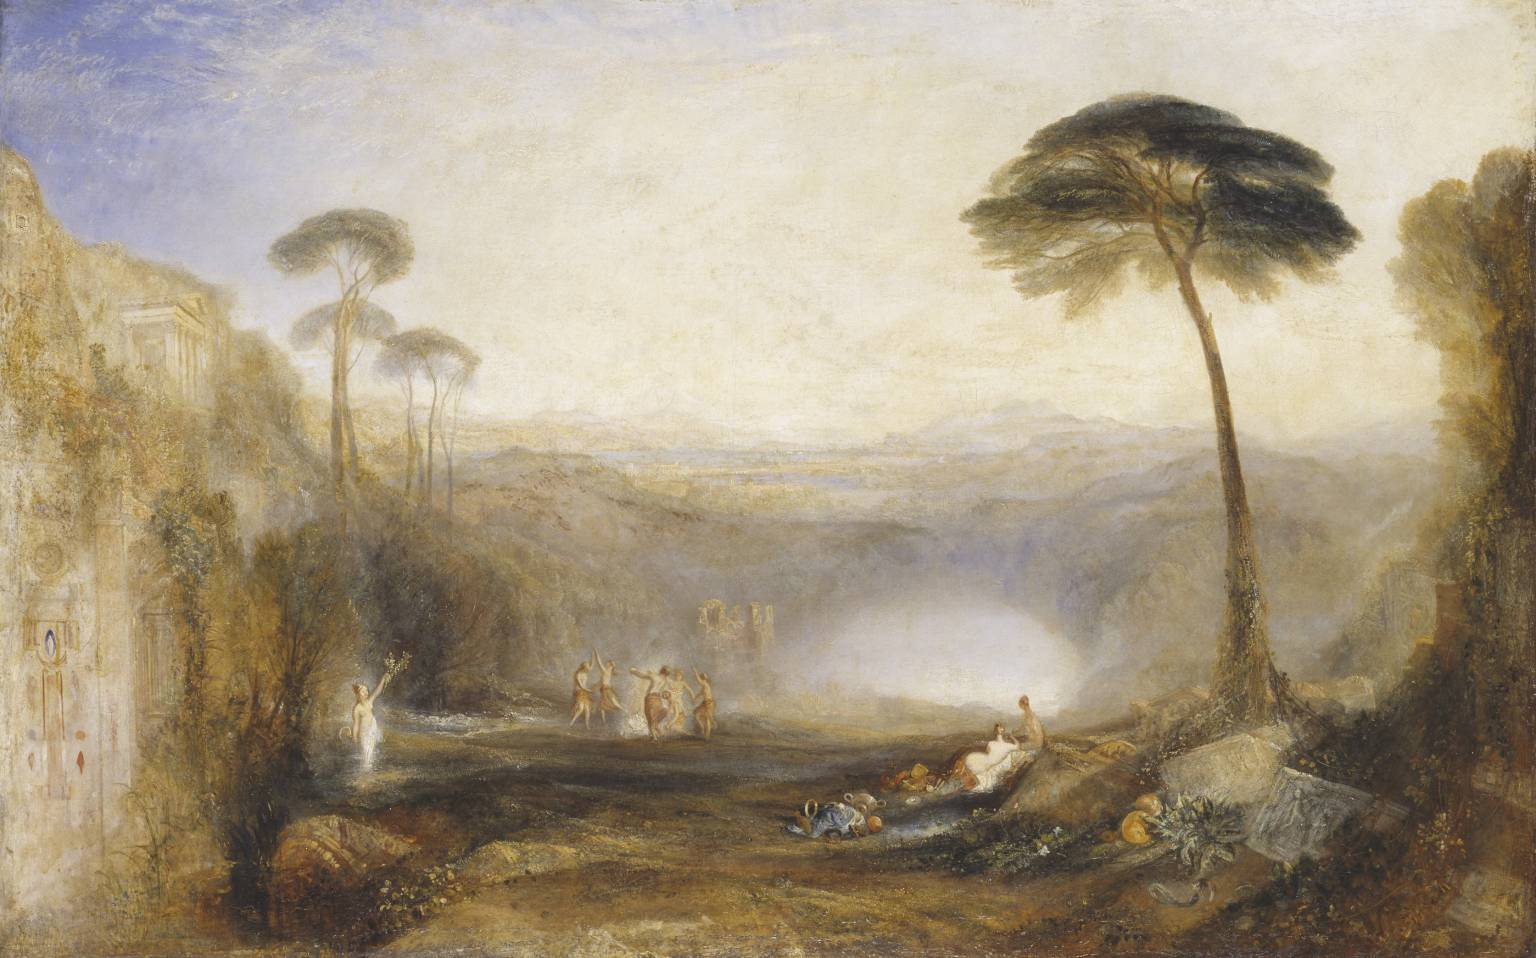 The Golden Bough exhibited 1834 Joseph Mallord William Turner 1775-1851 Presented by Robert Vernon 1847 https://commons.wikimedia.org/wiki/File:Golden_bough.jpg#/media/File:Golden_bough.jpg